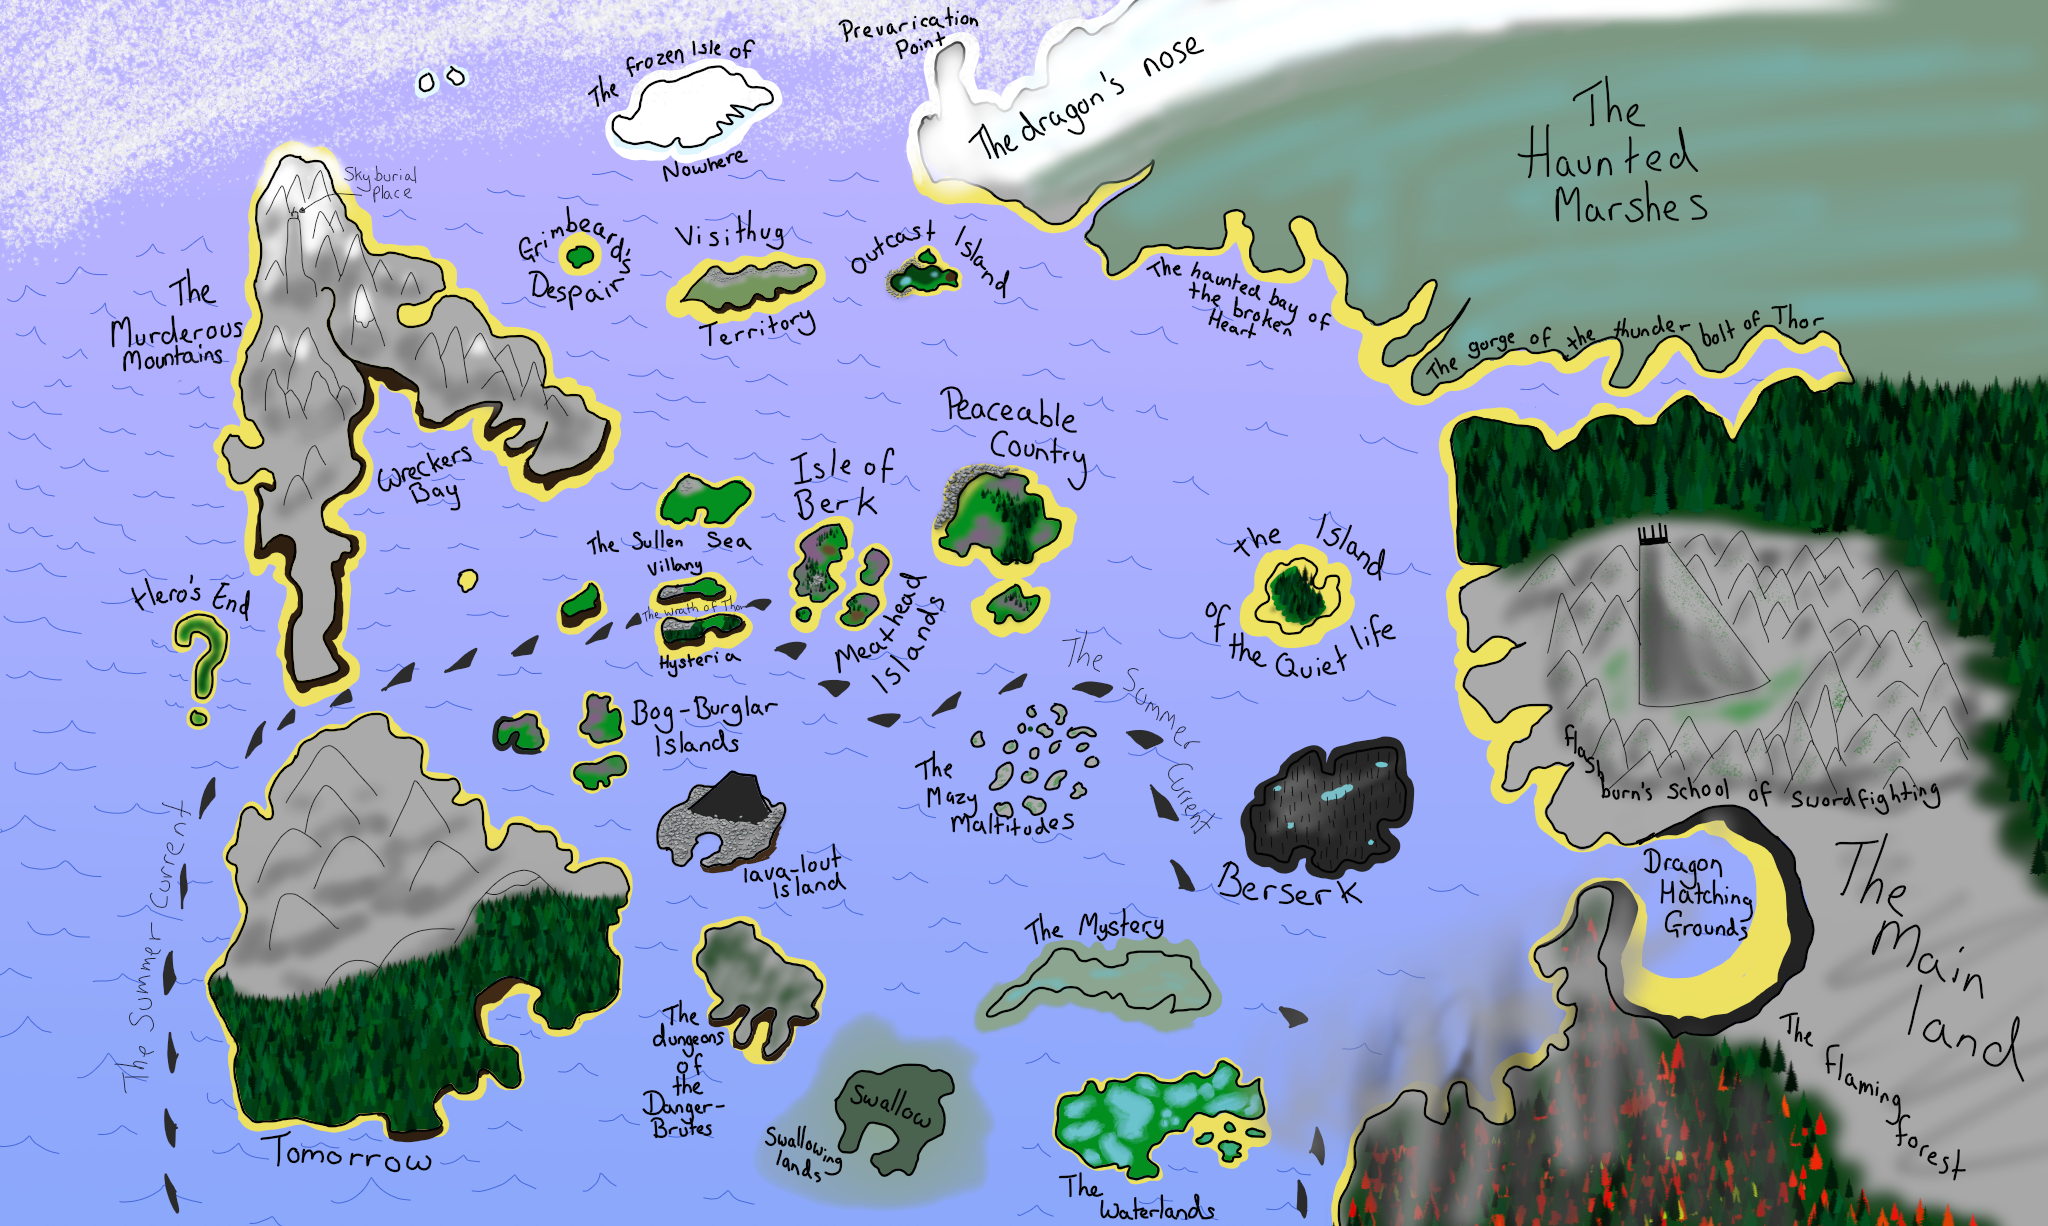 The barbaric archipelago by paintsplatkat on deviantart the barbaric archipelago by paintsplatkat the barbaric archipelago by paintsplatkat ccuart